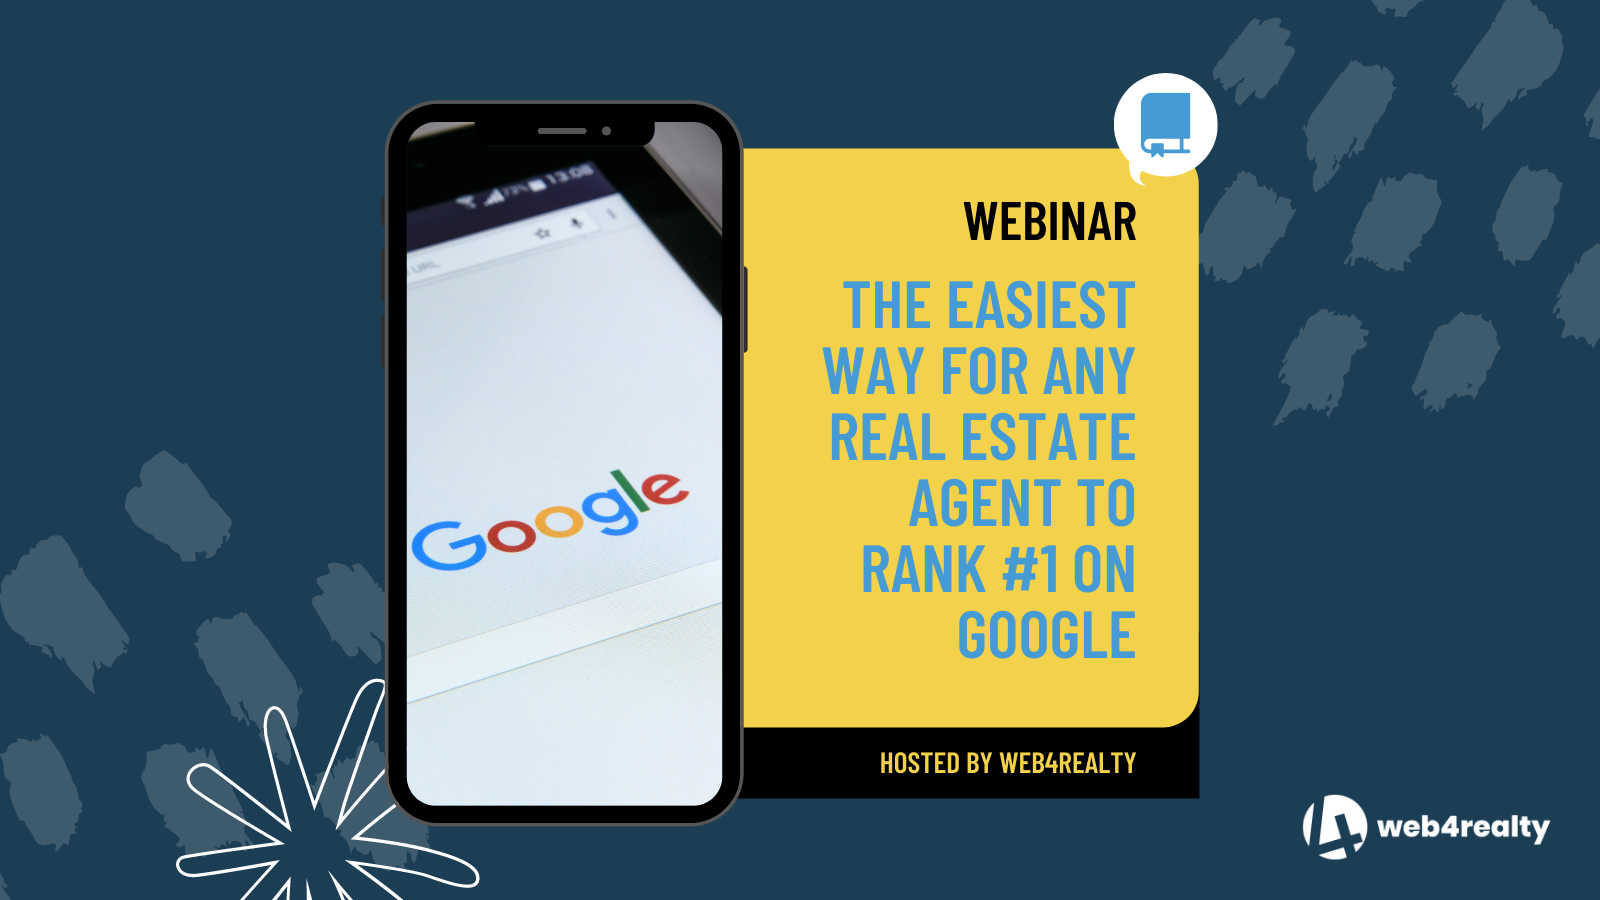 The Easiest Way for ANY Real Estate Agent to Rank #1 on Google